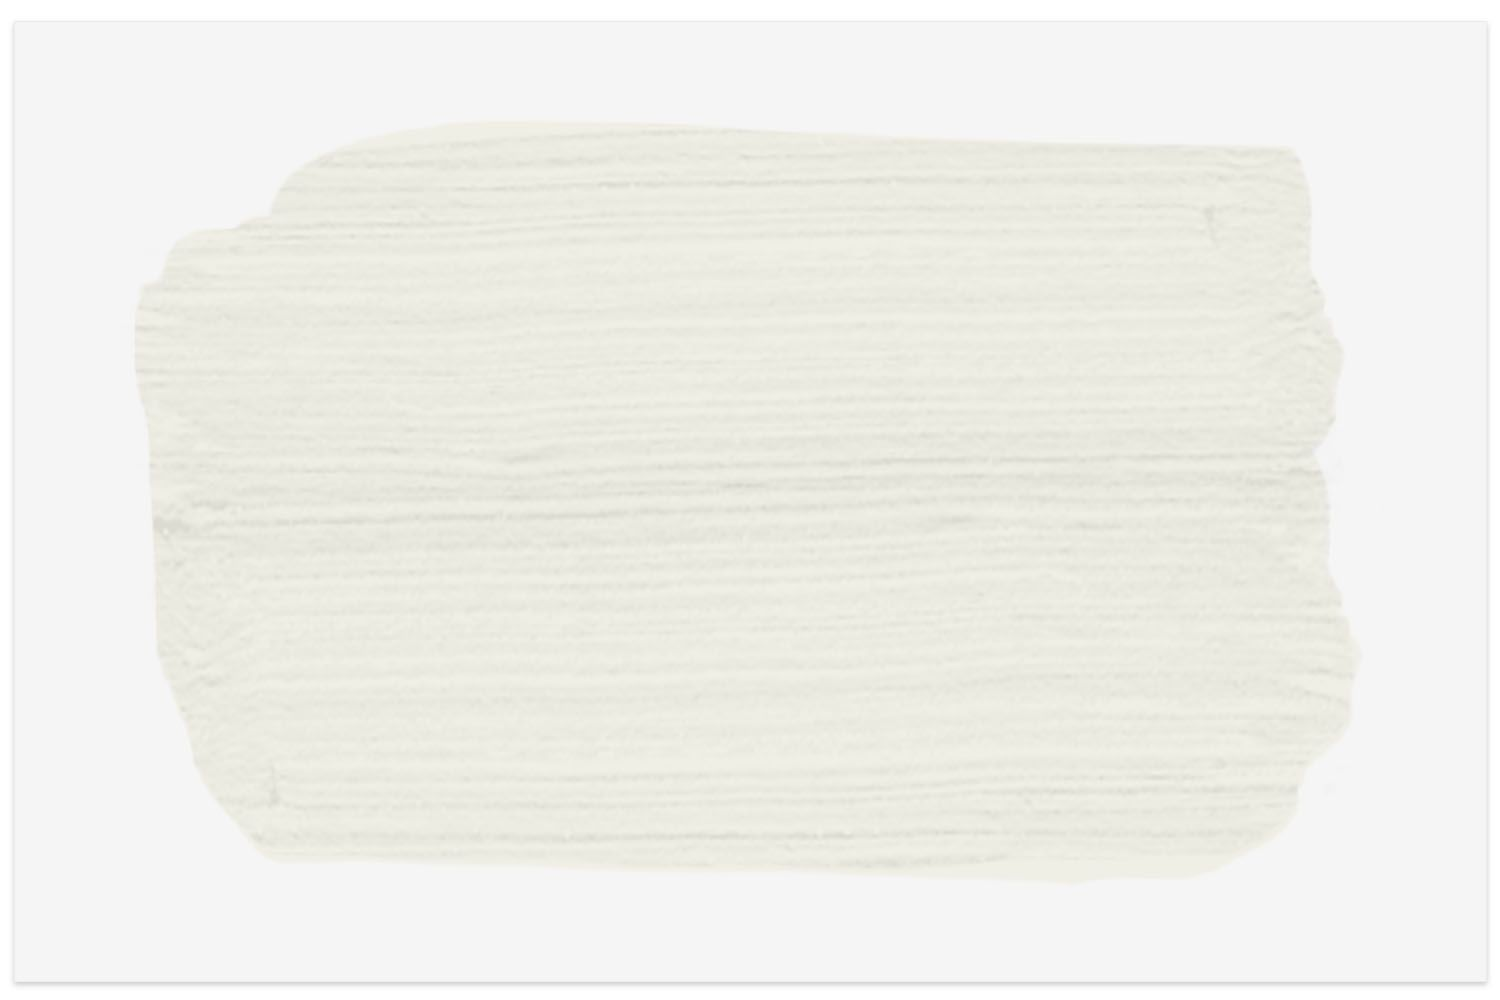 Benjamin Moore White Dove paint swatch